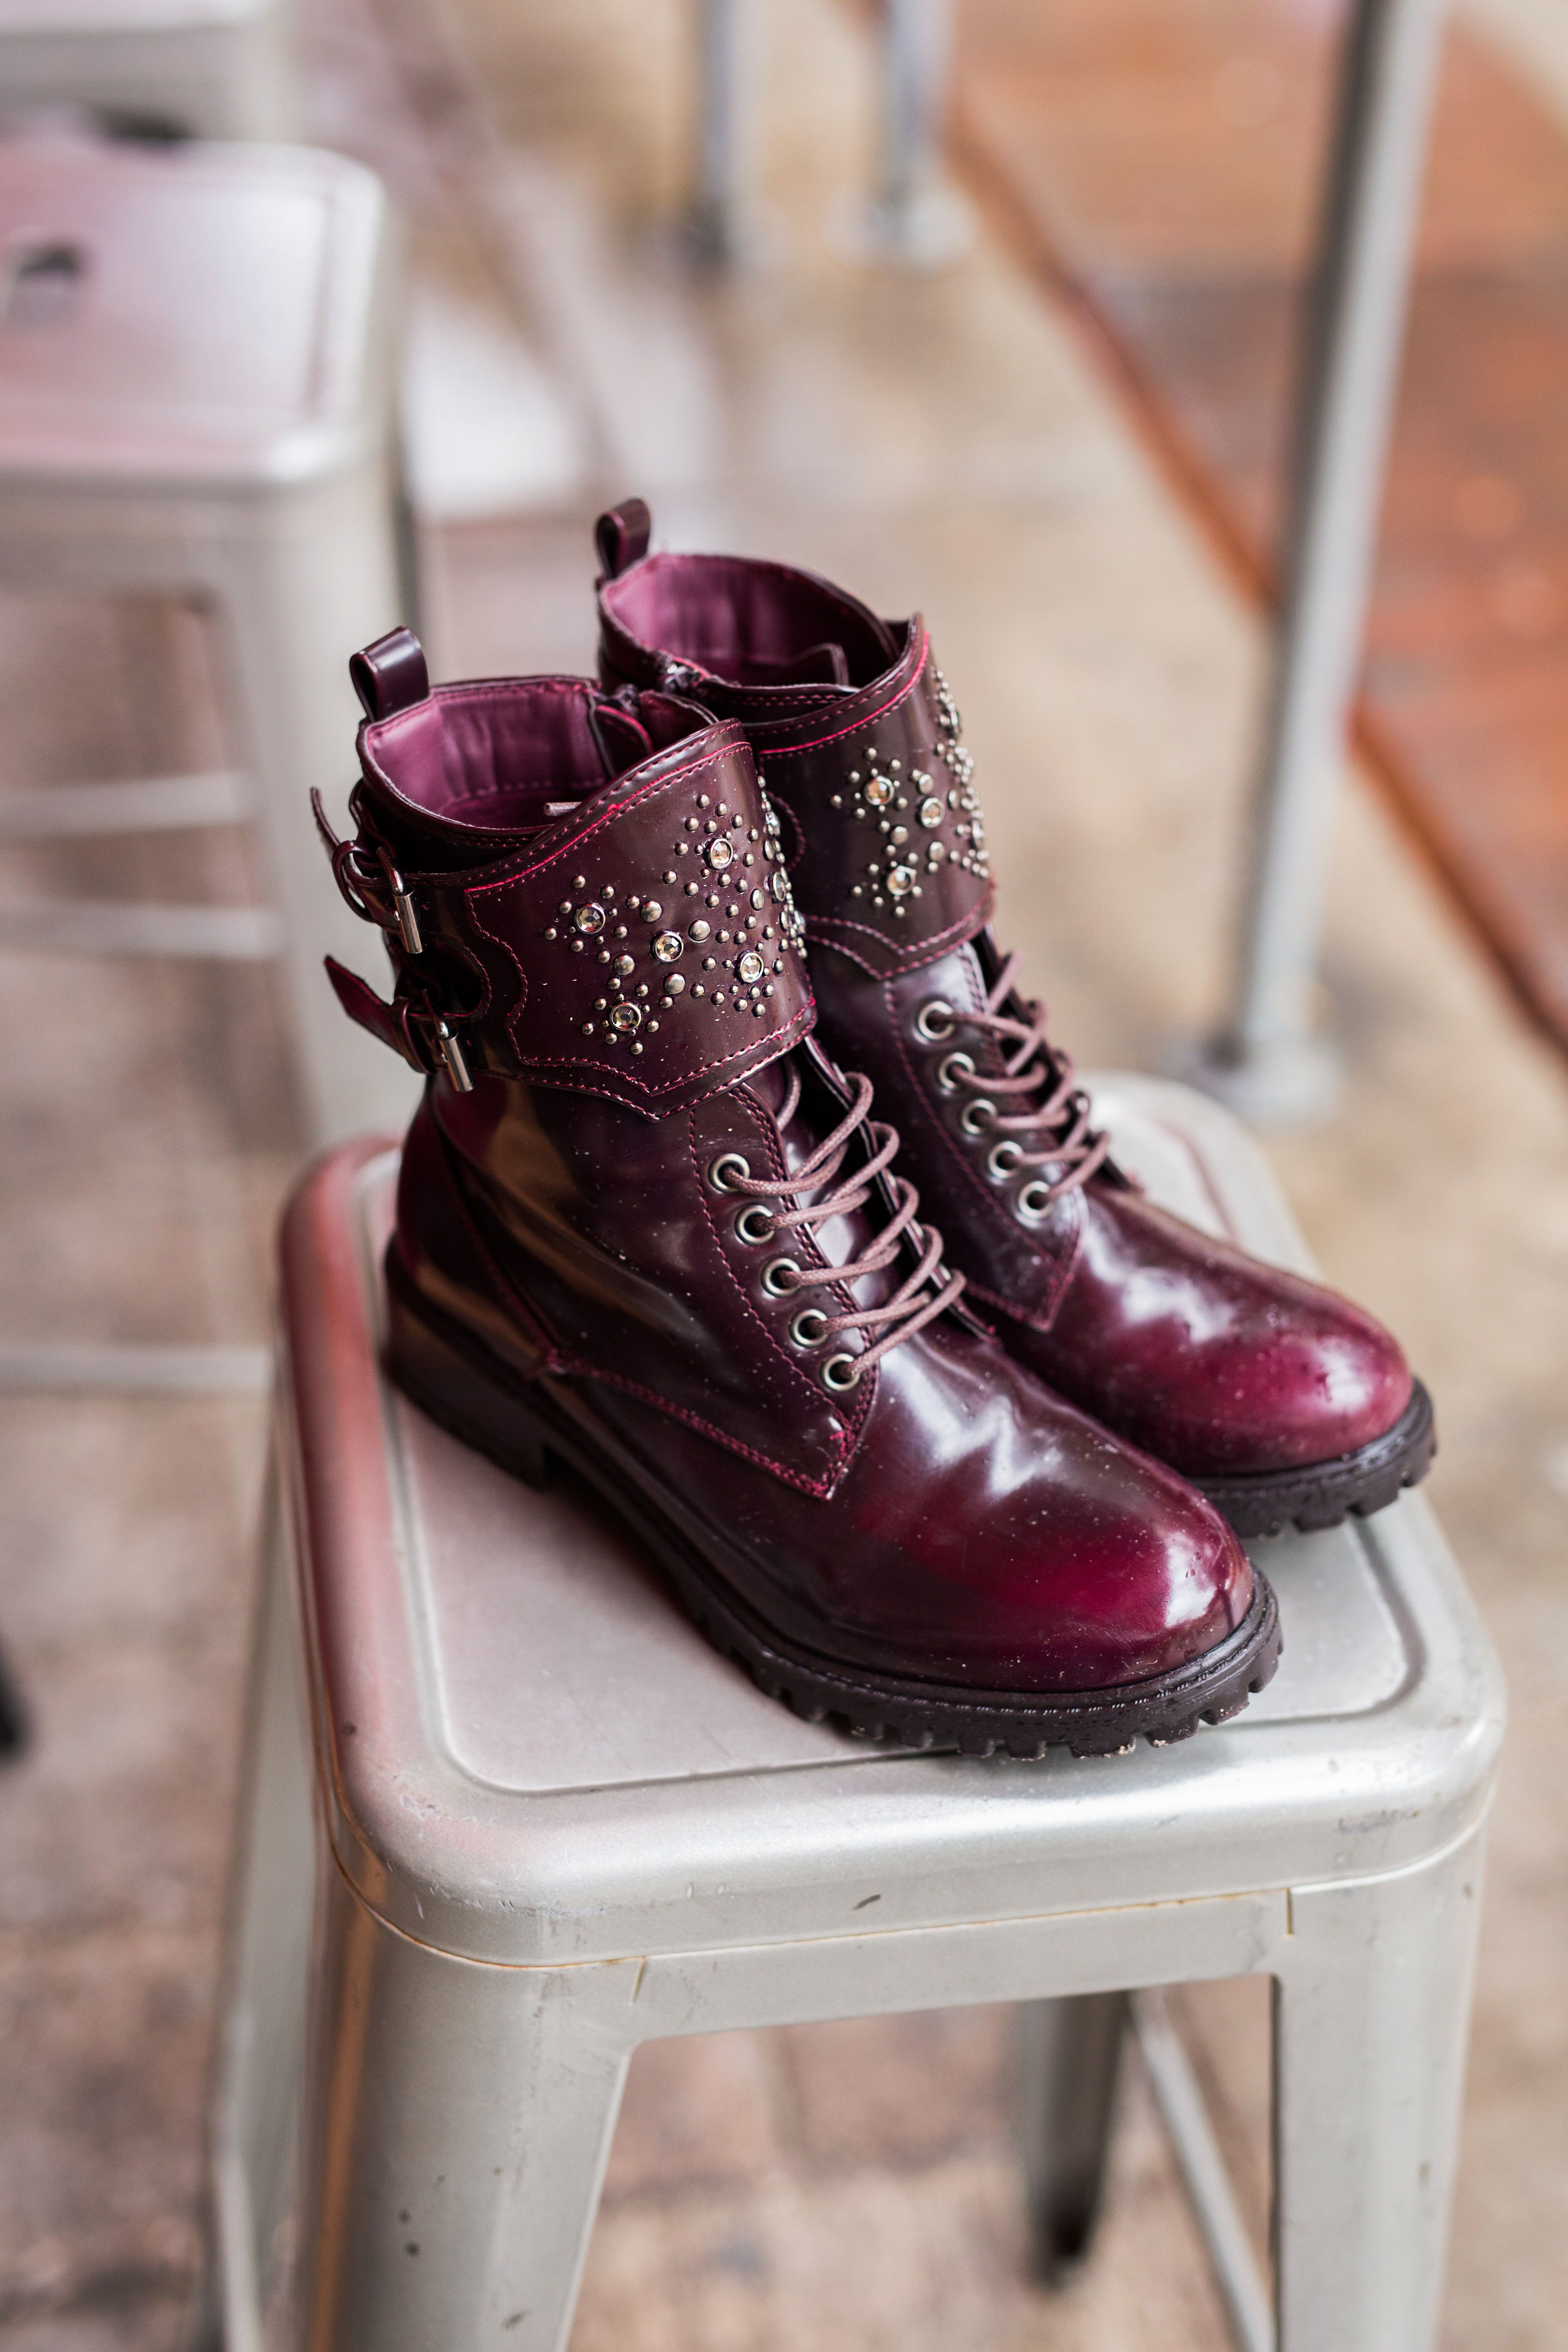 The MIA Perry combat shield studded combat boots will knock everyone down. Featuring a round toe, lace up, with a studded shield and buckle detail which will give you dangerous appeal. Shop the Perry here http://www.miashoes.com/perry.html